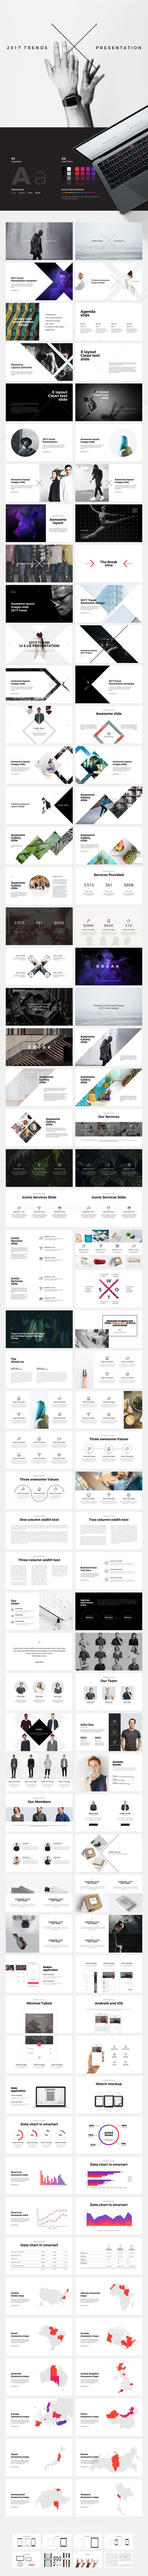 """Check out this @Behance project: """"X - FREE POWERPOINT & KEYNOTE TEMPLATE"""" https://www.behance.net/gallery/48970139/X-FREE-POWERPOINT-KEYNOTE-TEMPLATE"""